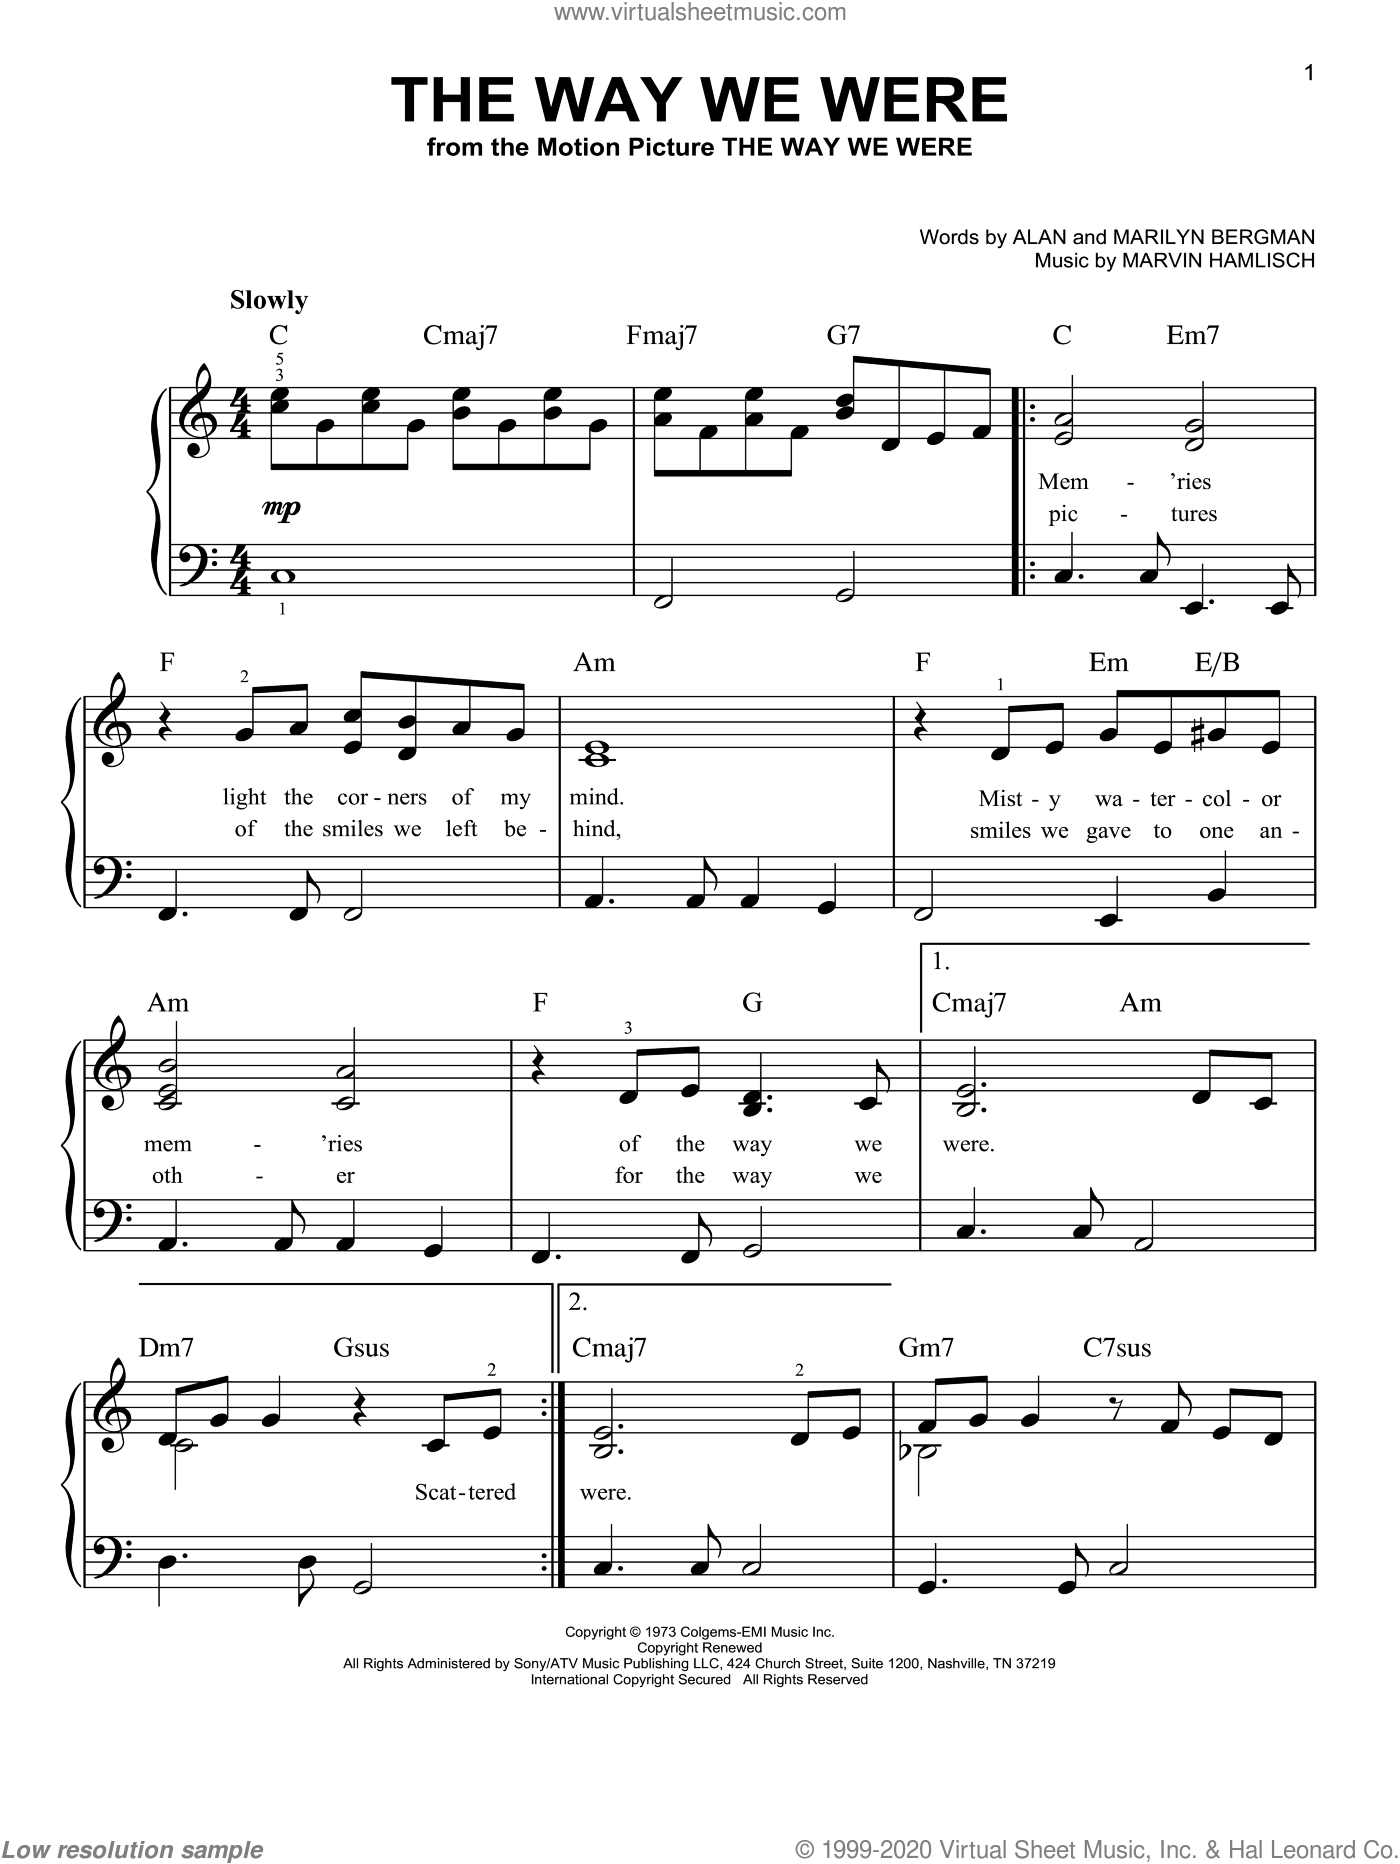 The Way We Were, (easy) sheet music for piano solo by Barbra Streisand, Alan Bergman, Marilyn Bergman and Marvin Hamlisch, easy skill level